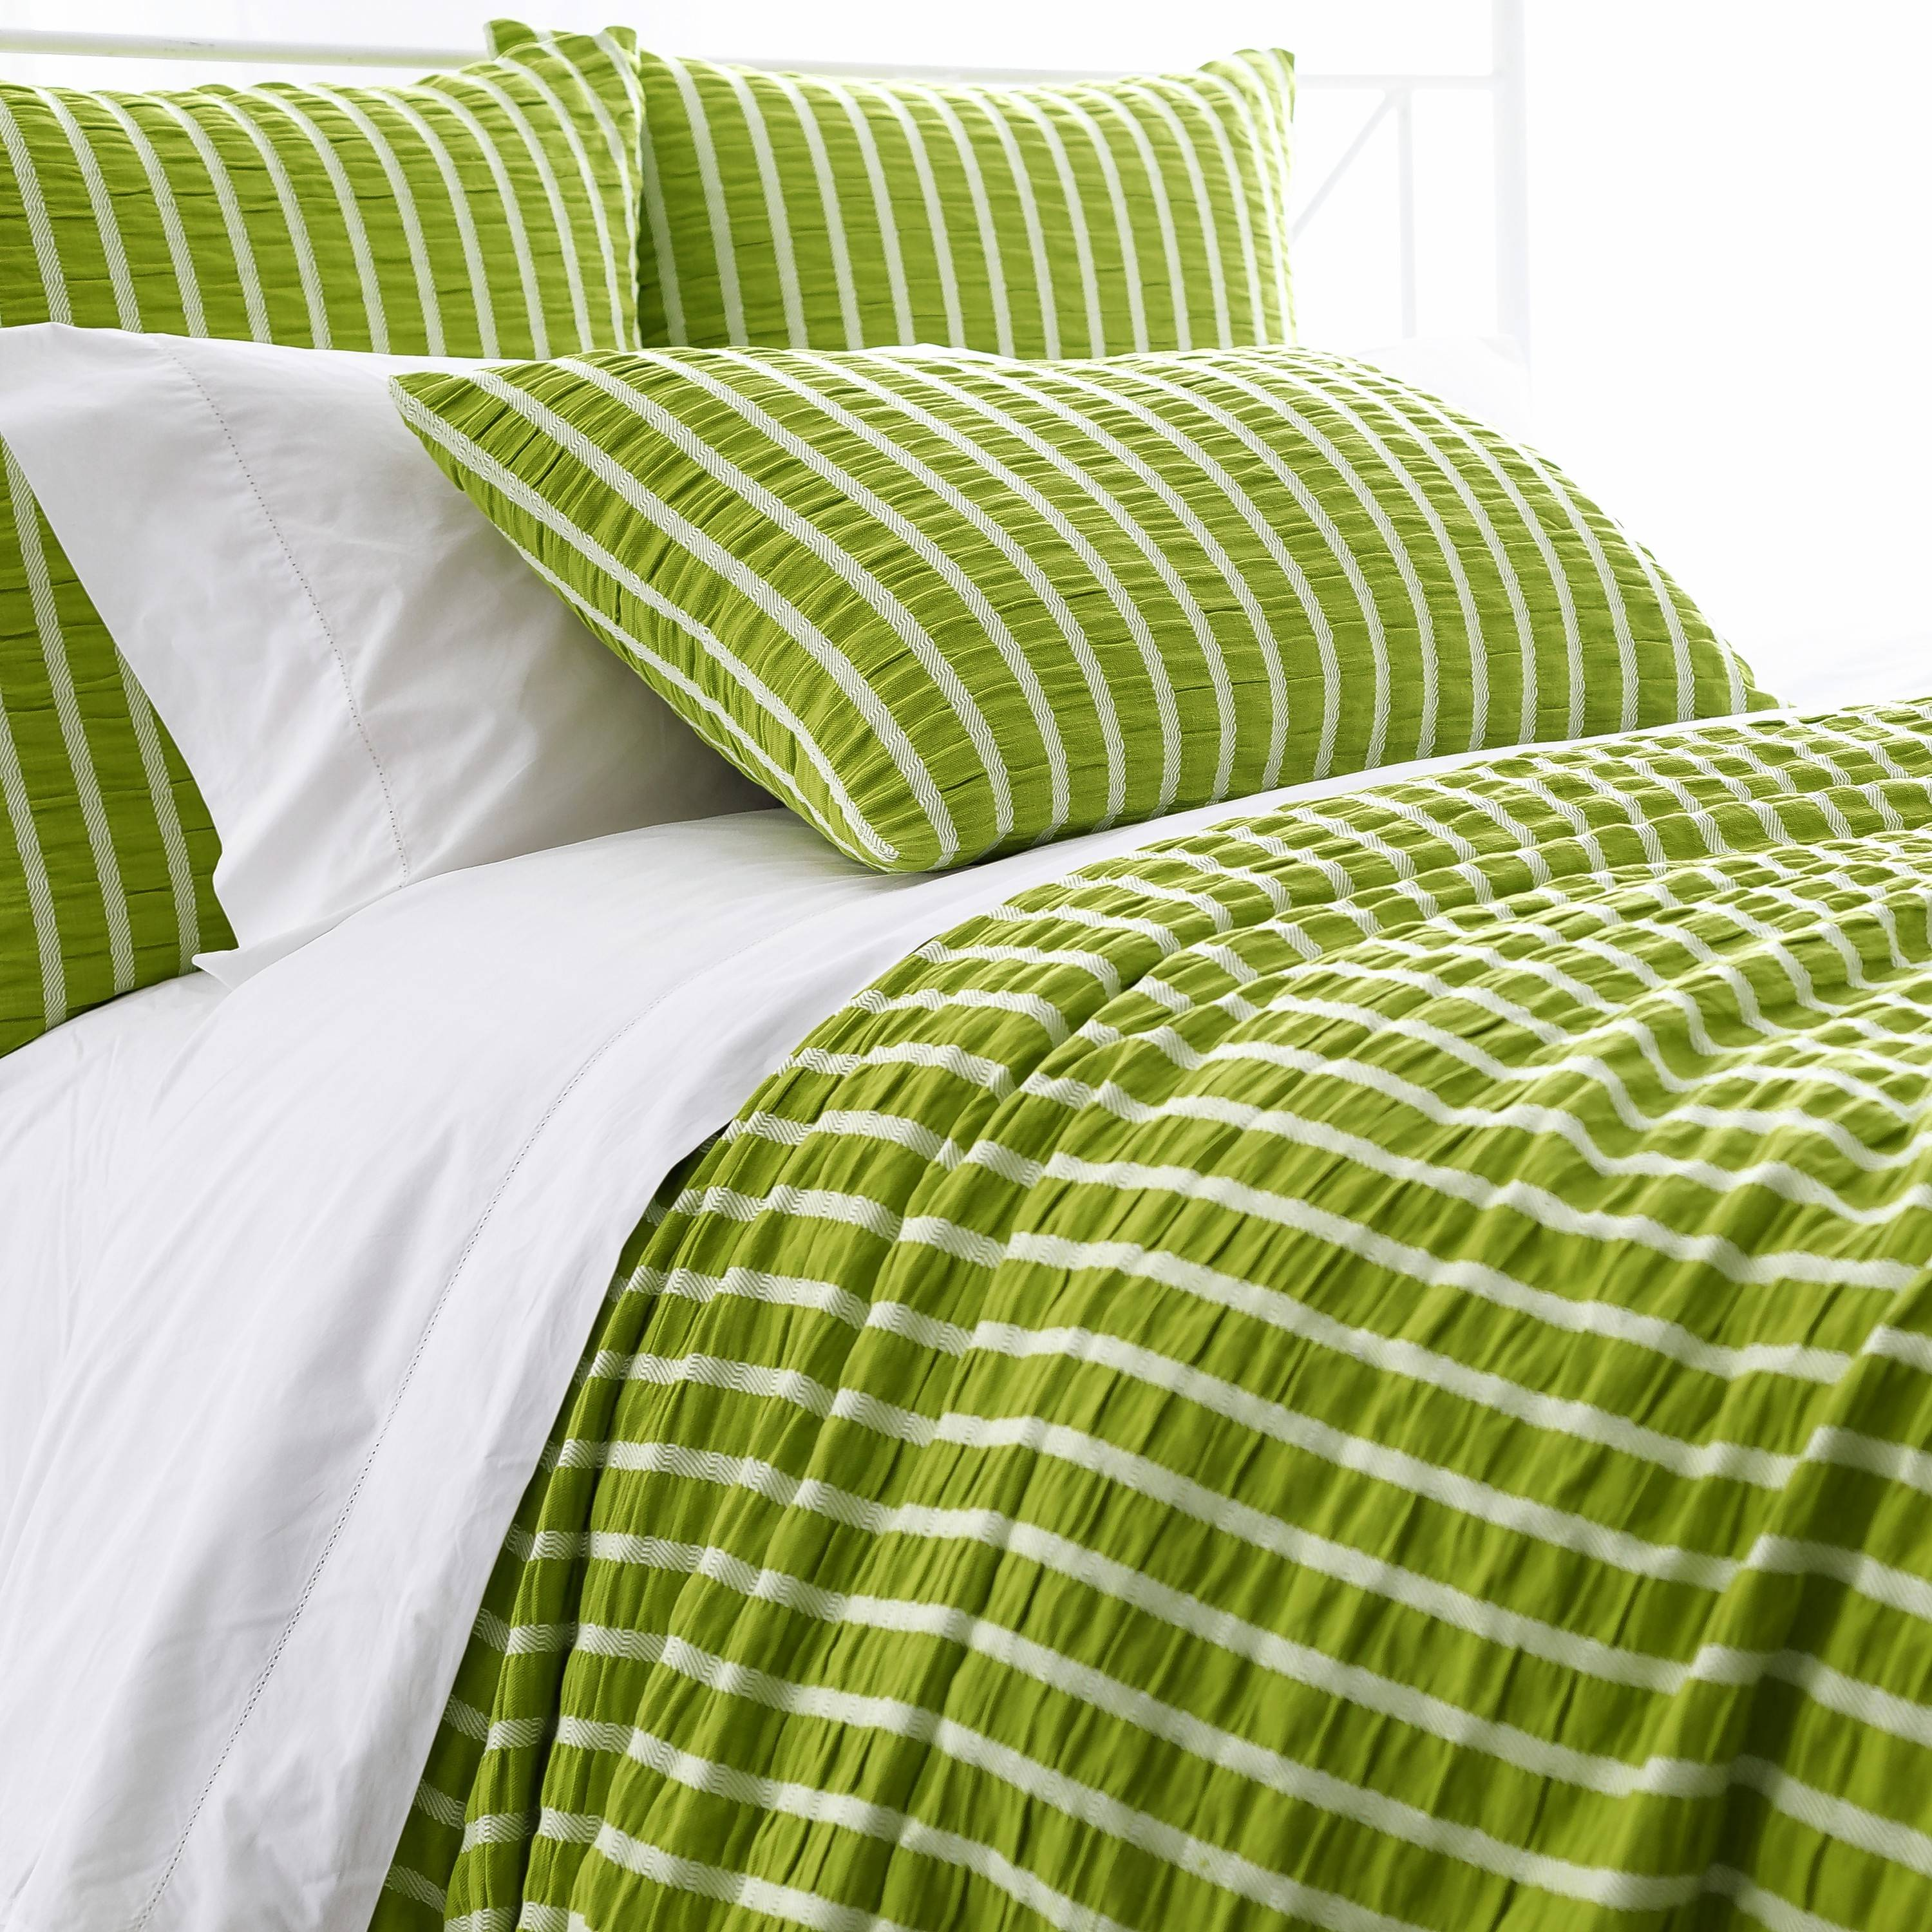 The Parker Green Duvet's preppy white stripes are a fun touch. It costs between $194 and $262, depending on bed size.